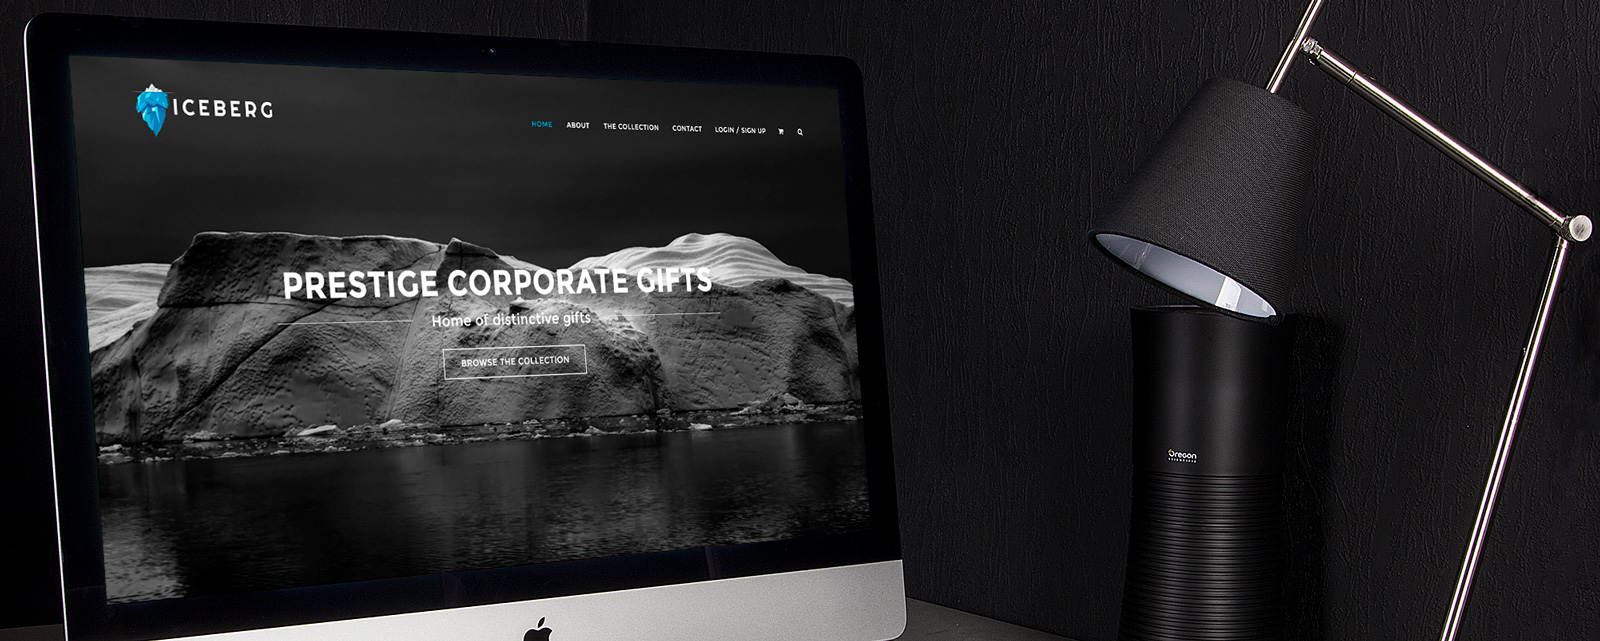 Iceberg-gifts-website-design-landscape